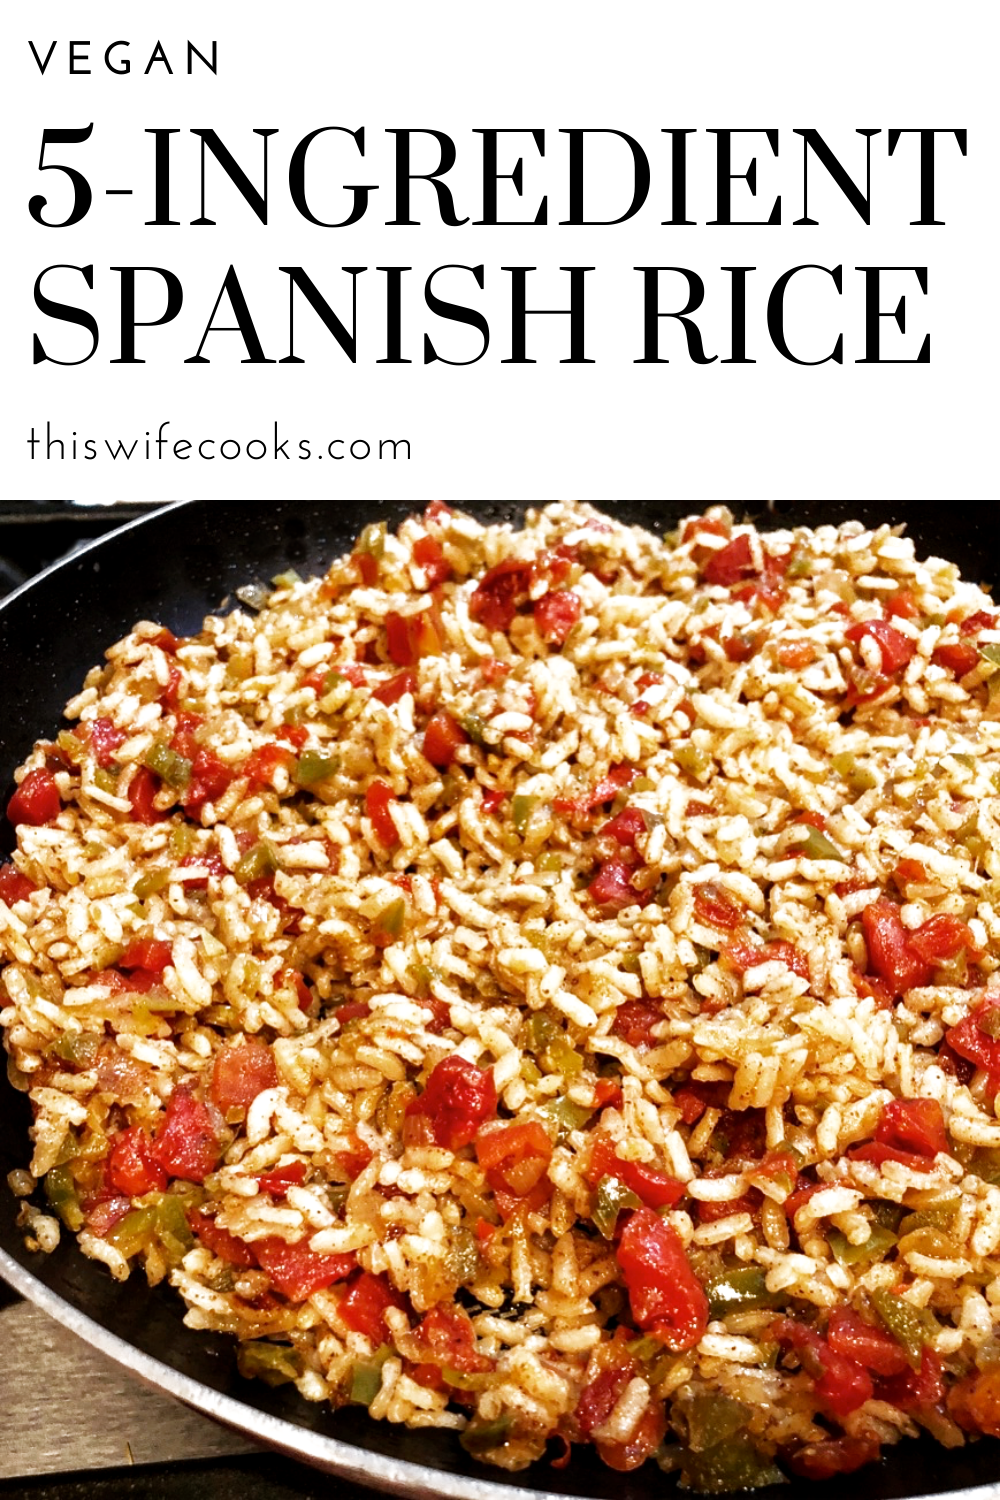 5-Ingredient Vegan Spanish Rice - A quick and easy vegan Spanish rice. Perfect on the side with tacos, as filling for enchiladas and burritos, or a hearty addition to your taco salad. via @thiswifecooks